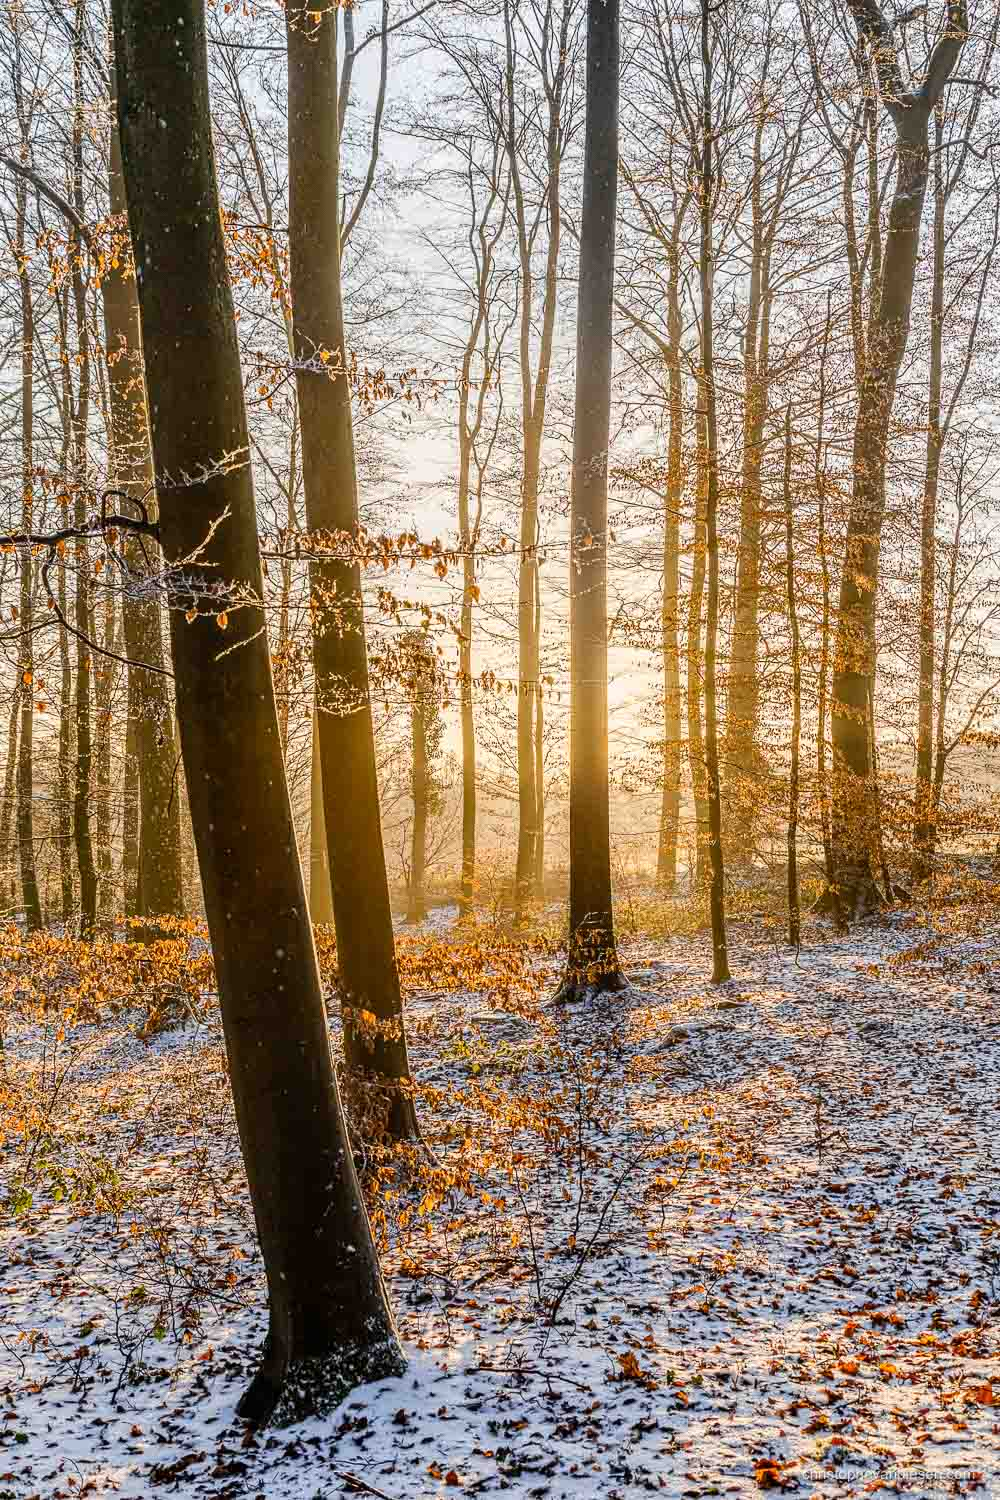 Snow in Luxembourg - Winter sunset in a forest somewhere in the Grand-Duchy of Snow in Luxembourg - Winter Light